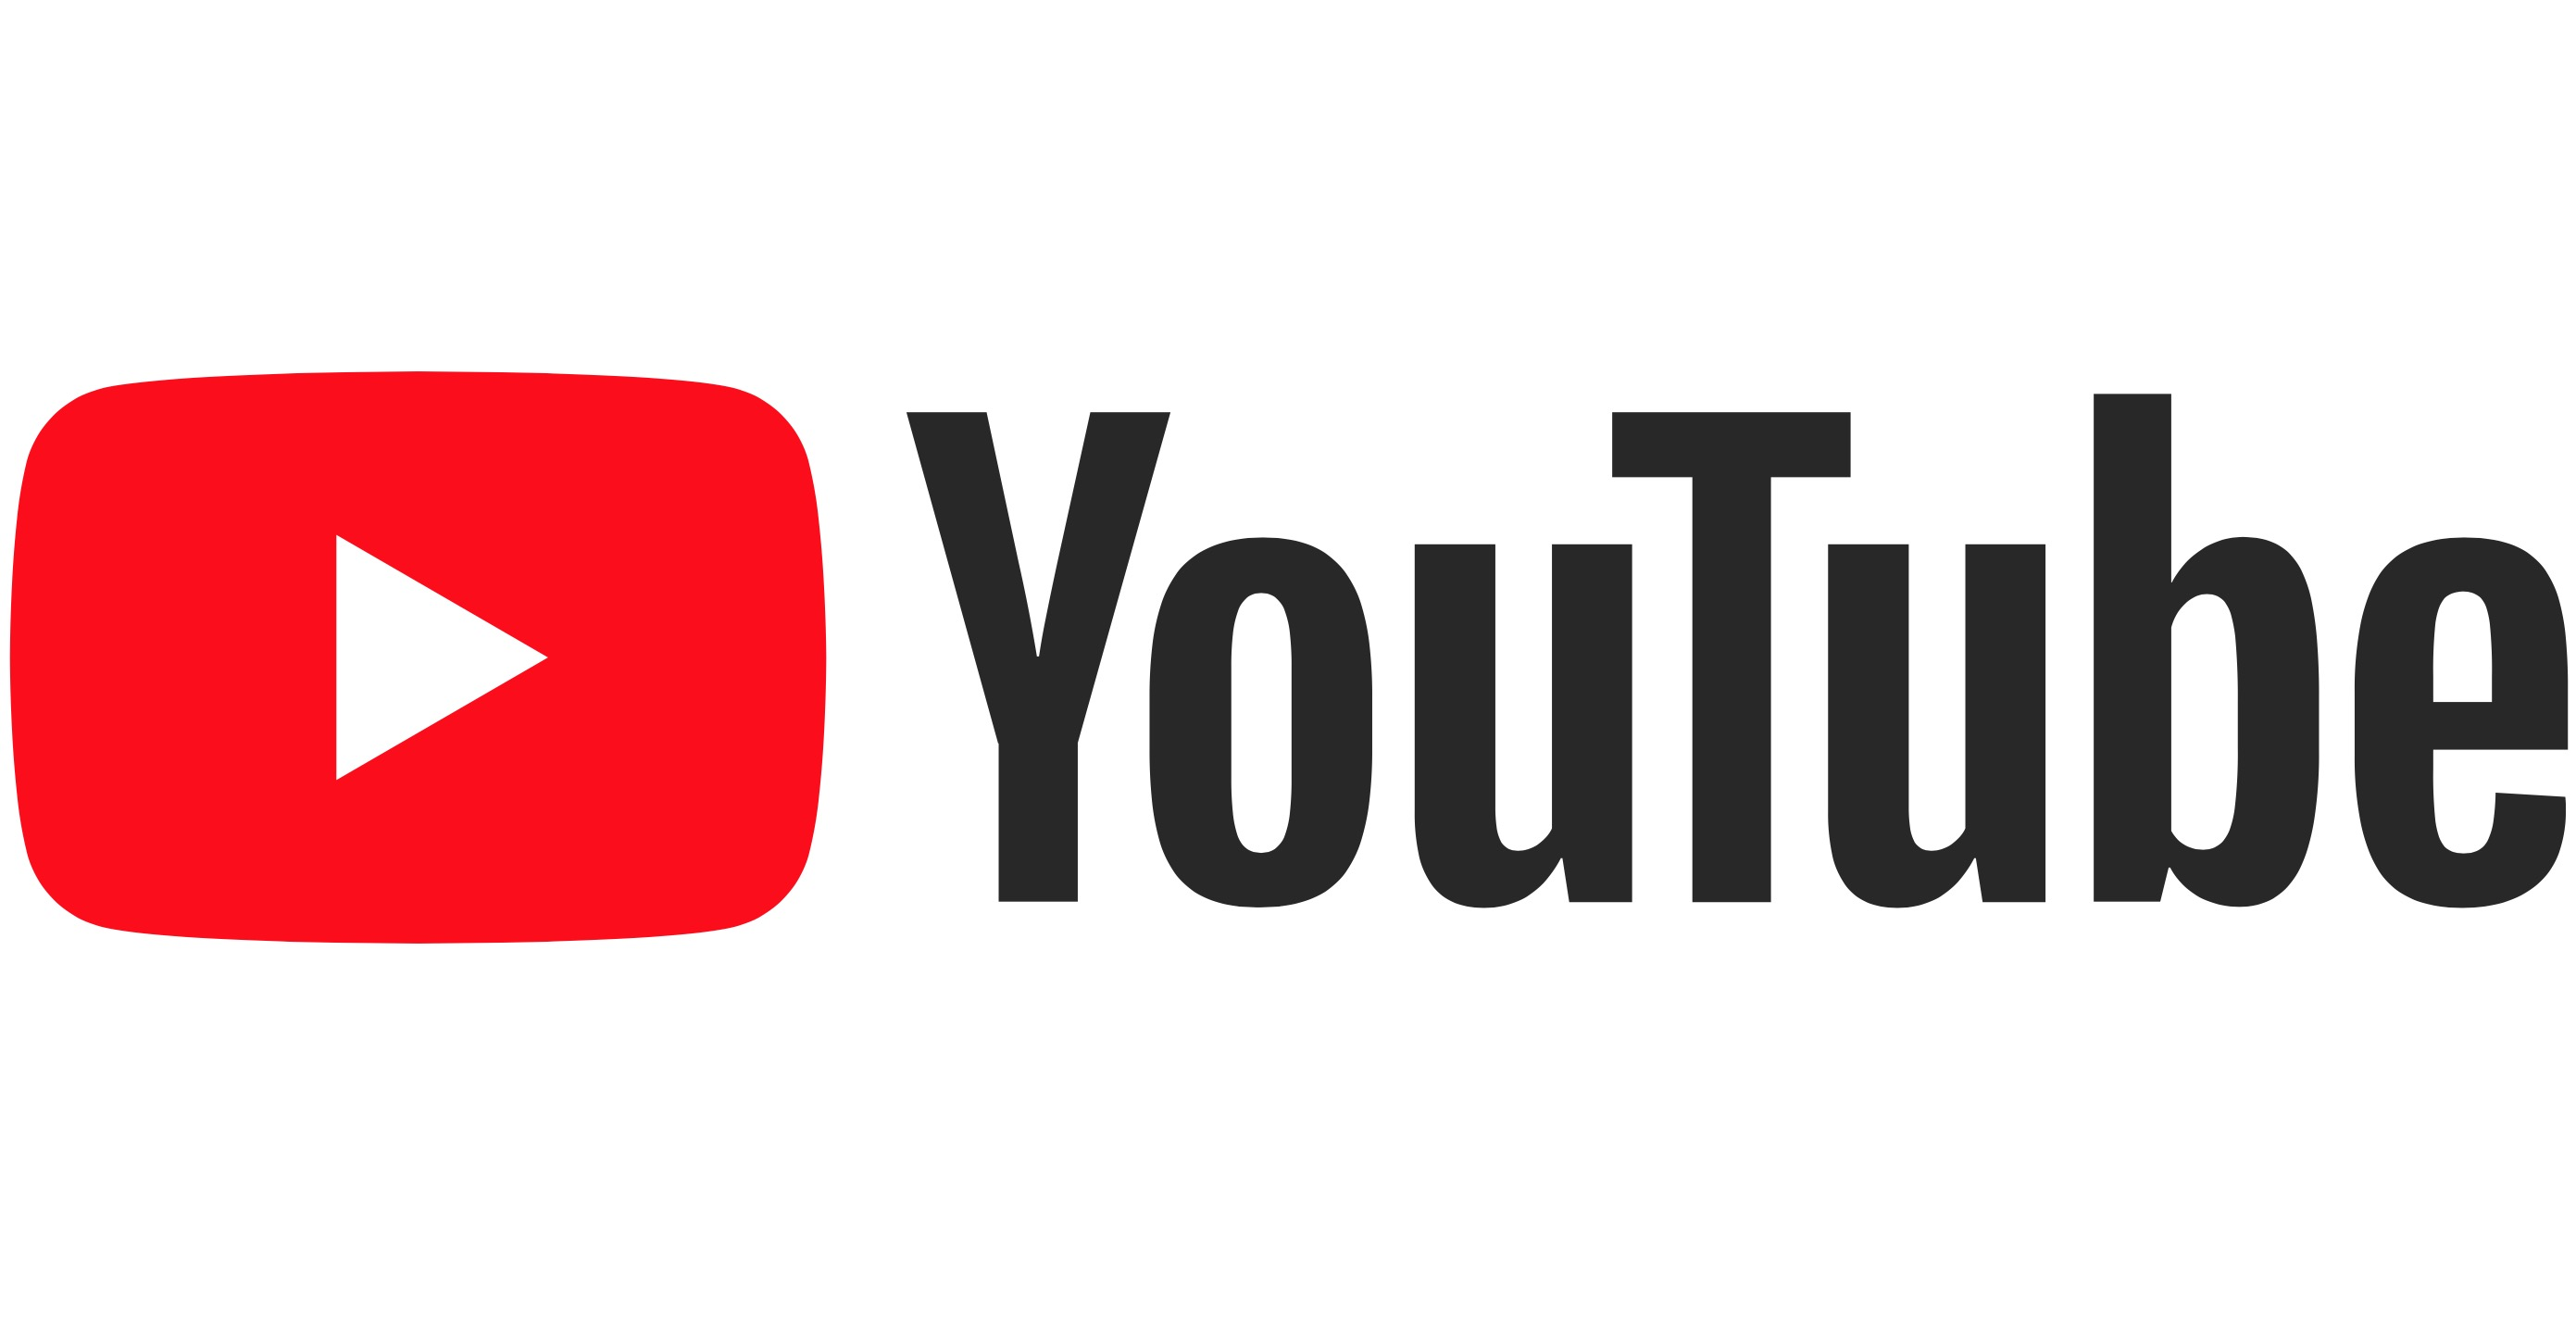 Come cancellare la cronologia di YouTube